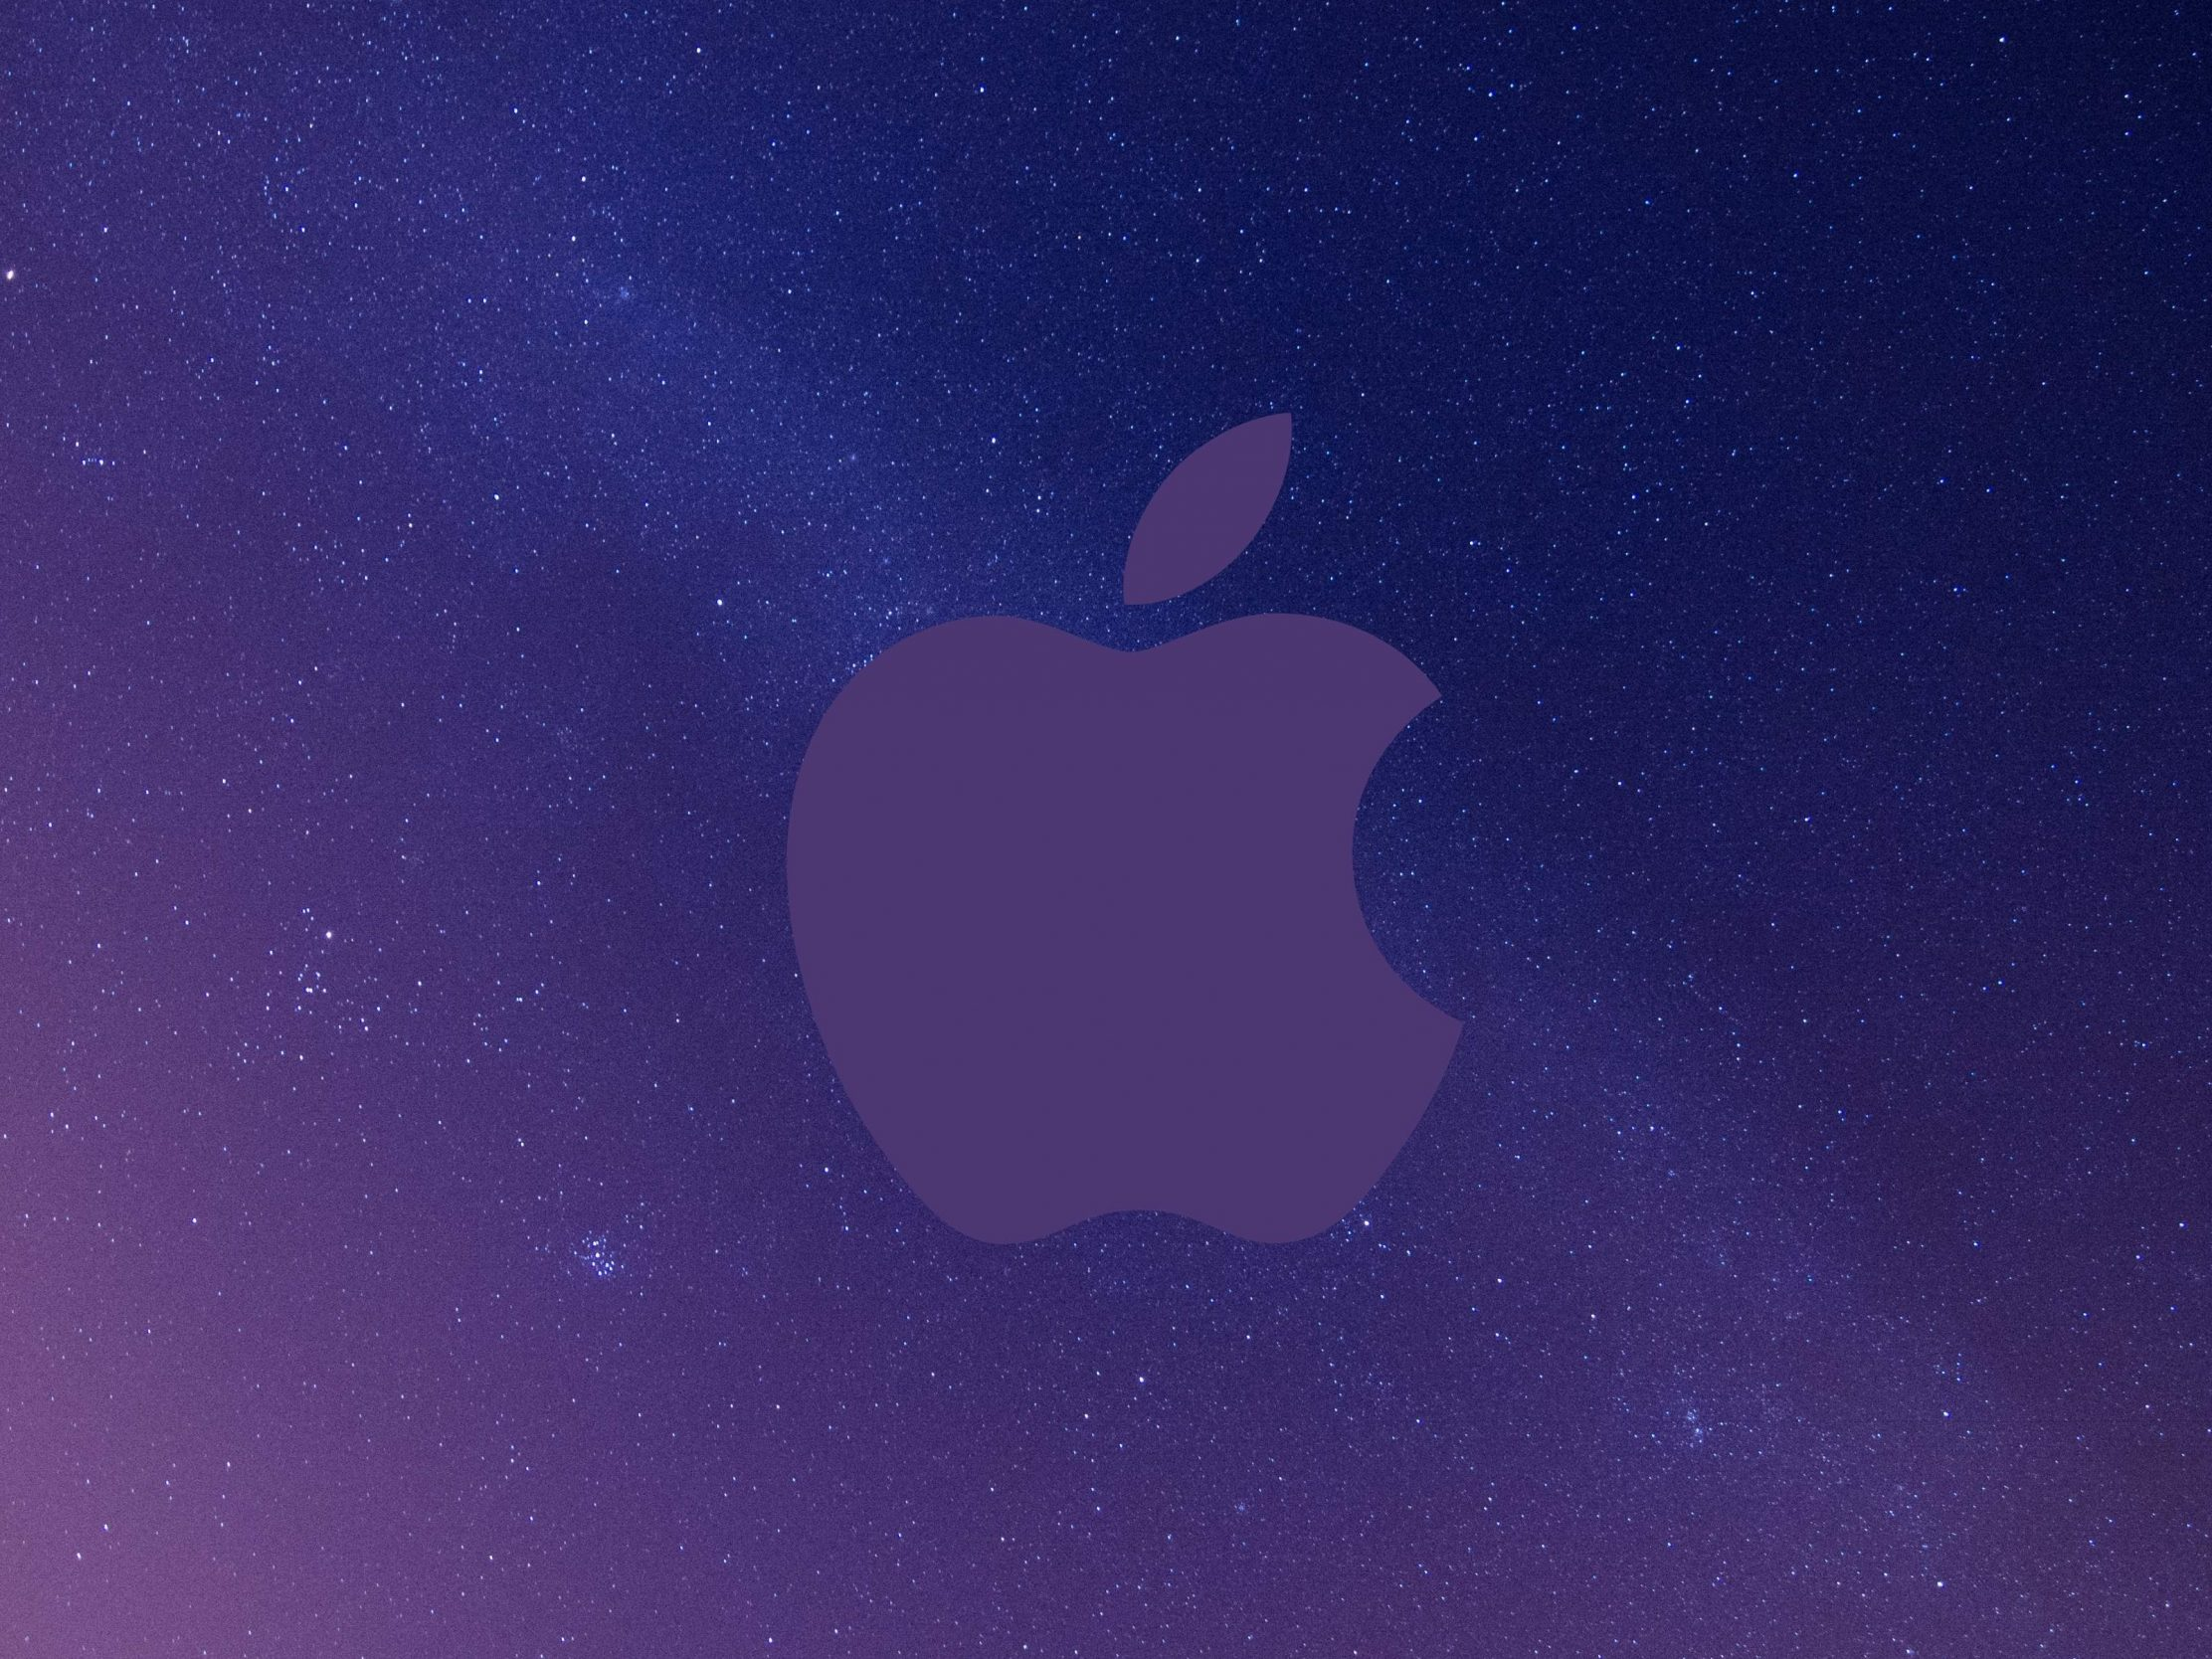 2224x1668 iPad Pro wallpapers Apple Logo Grey Sky Night Stars Space iPad Wallpaper 2224x1668 pixels resolution